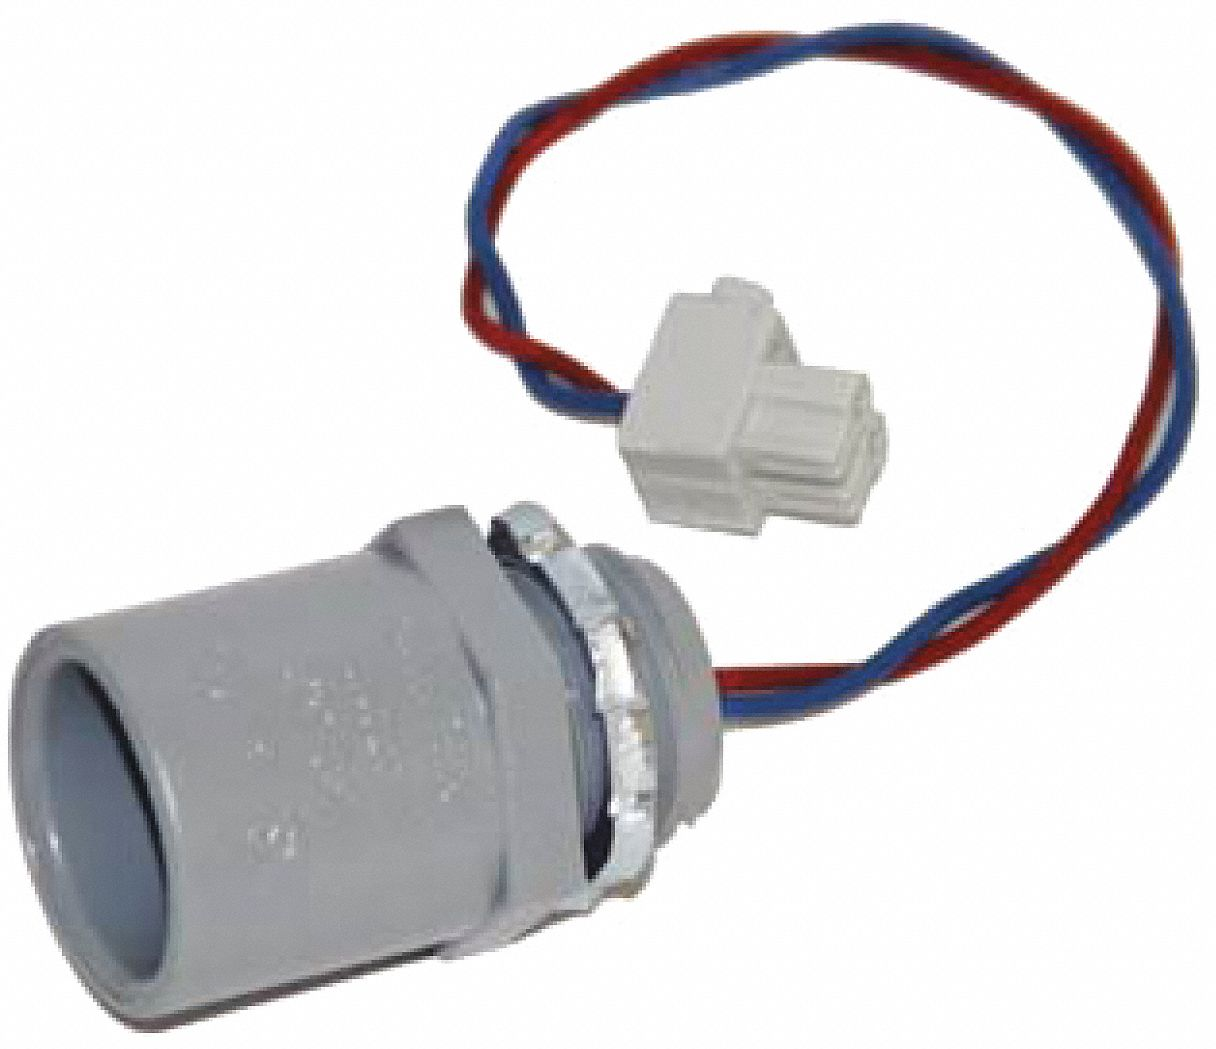 Lighting Control System Accessories